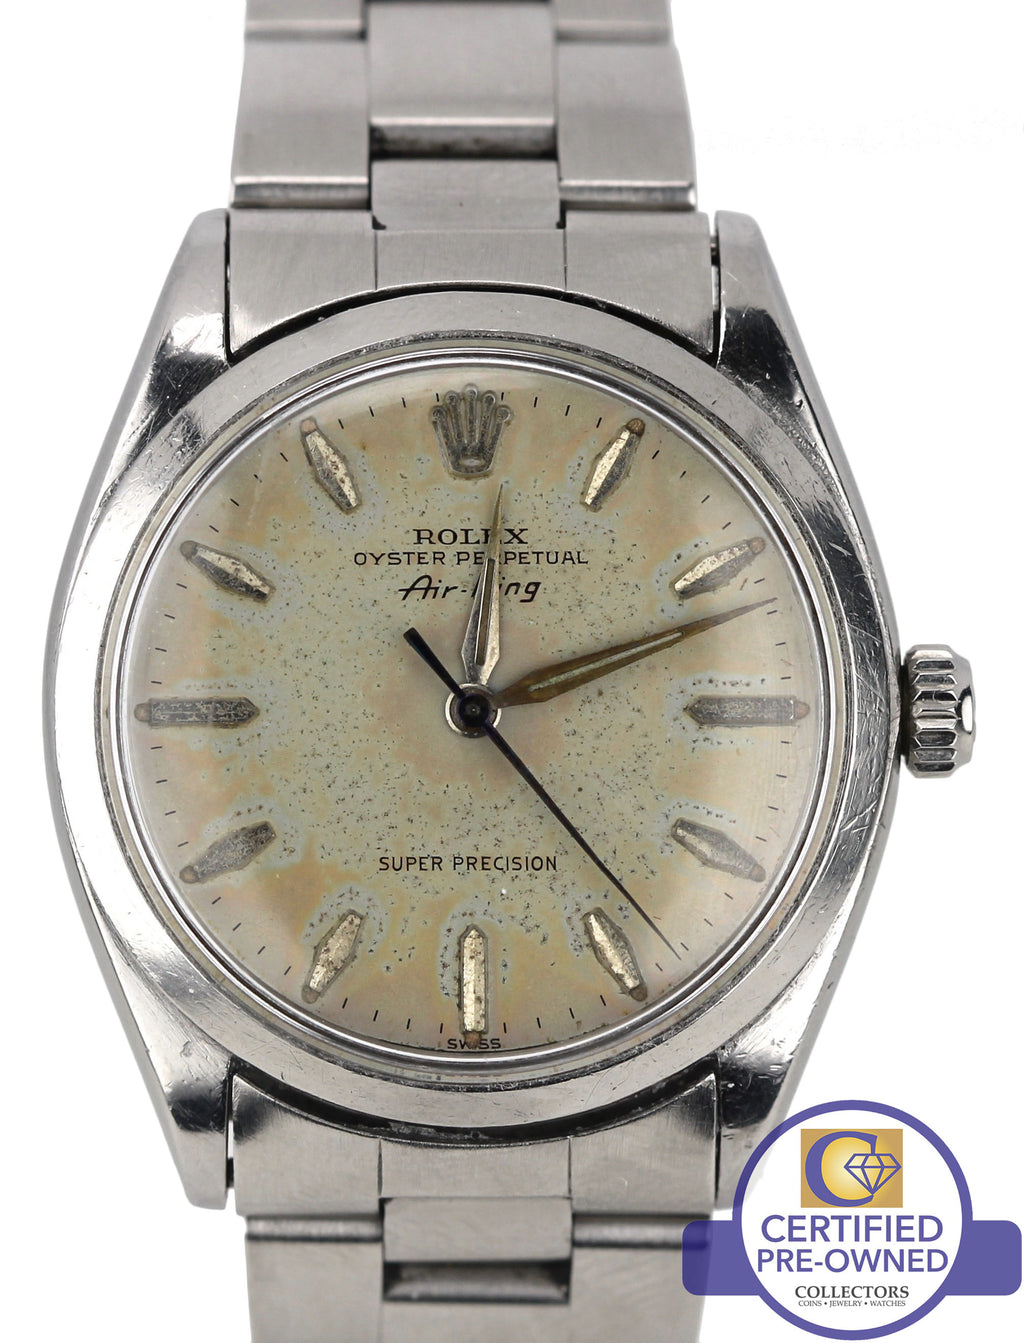 Rolex Oyster Perpetual Air-King Silver Patina Stainless 5500 34mm Watch 14000